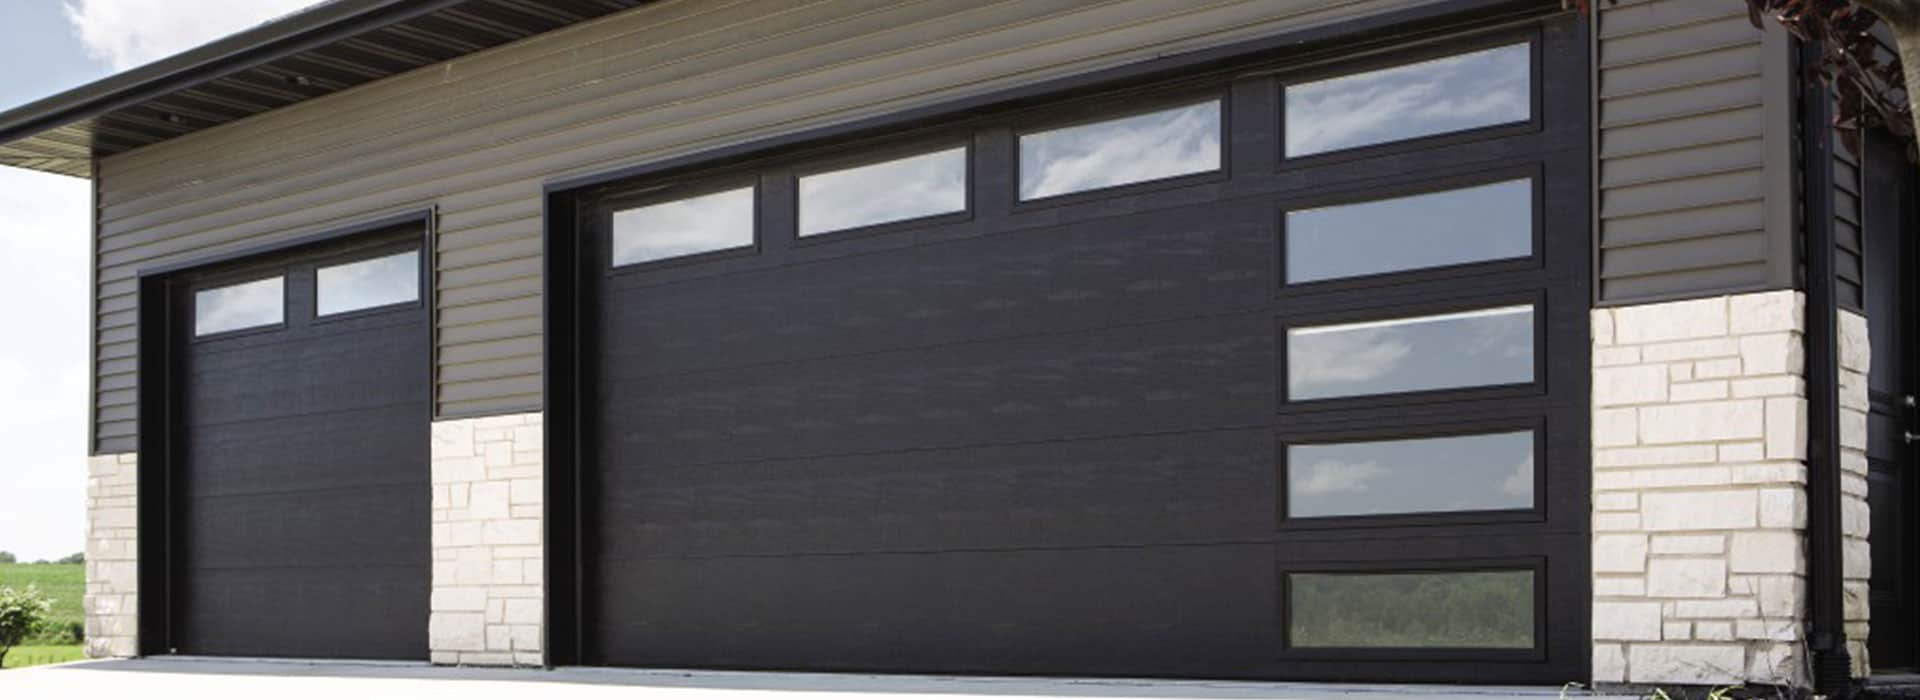 Garage Door Service – What Should Be Checked Regularly? – AllNetArticles